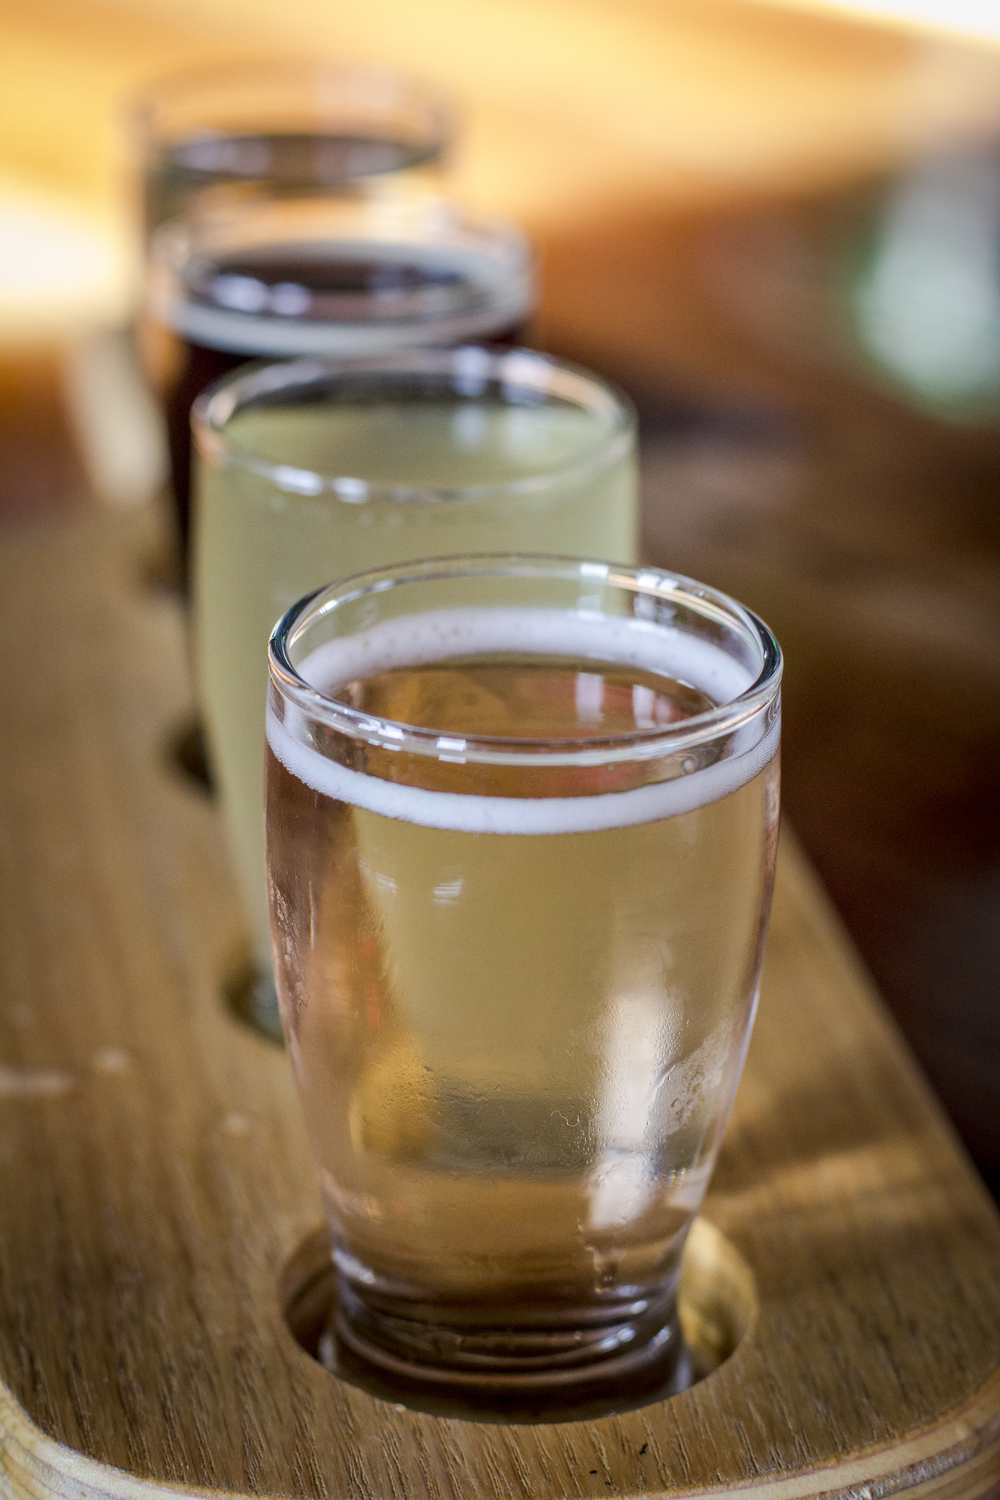 Cider flight stare down. Front and center is Freewheeler, Sociable's signature cider that tastes like an apple Champagne.